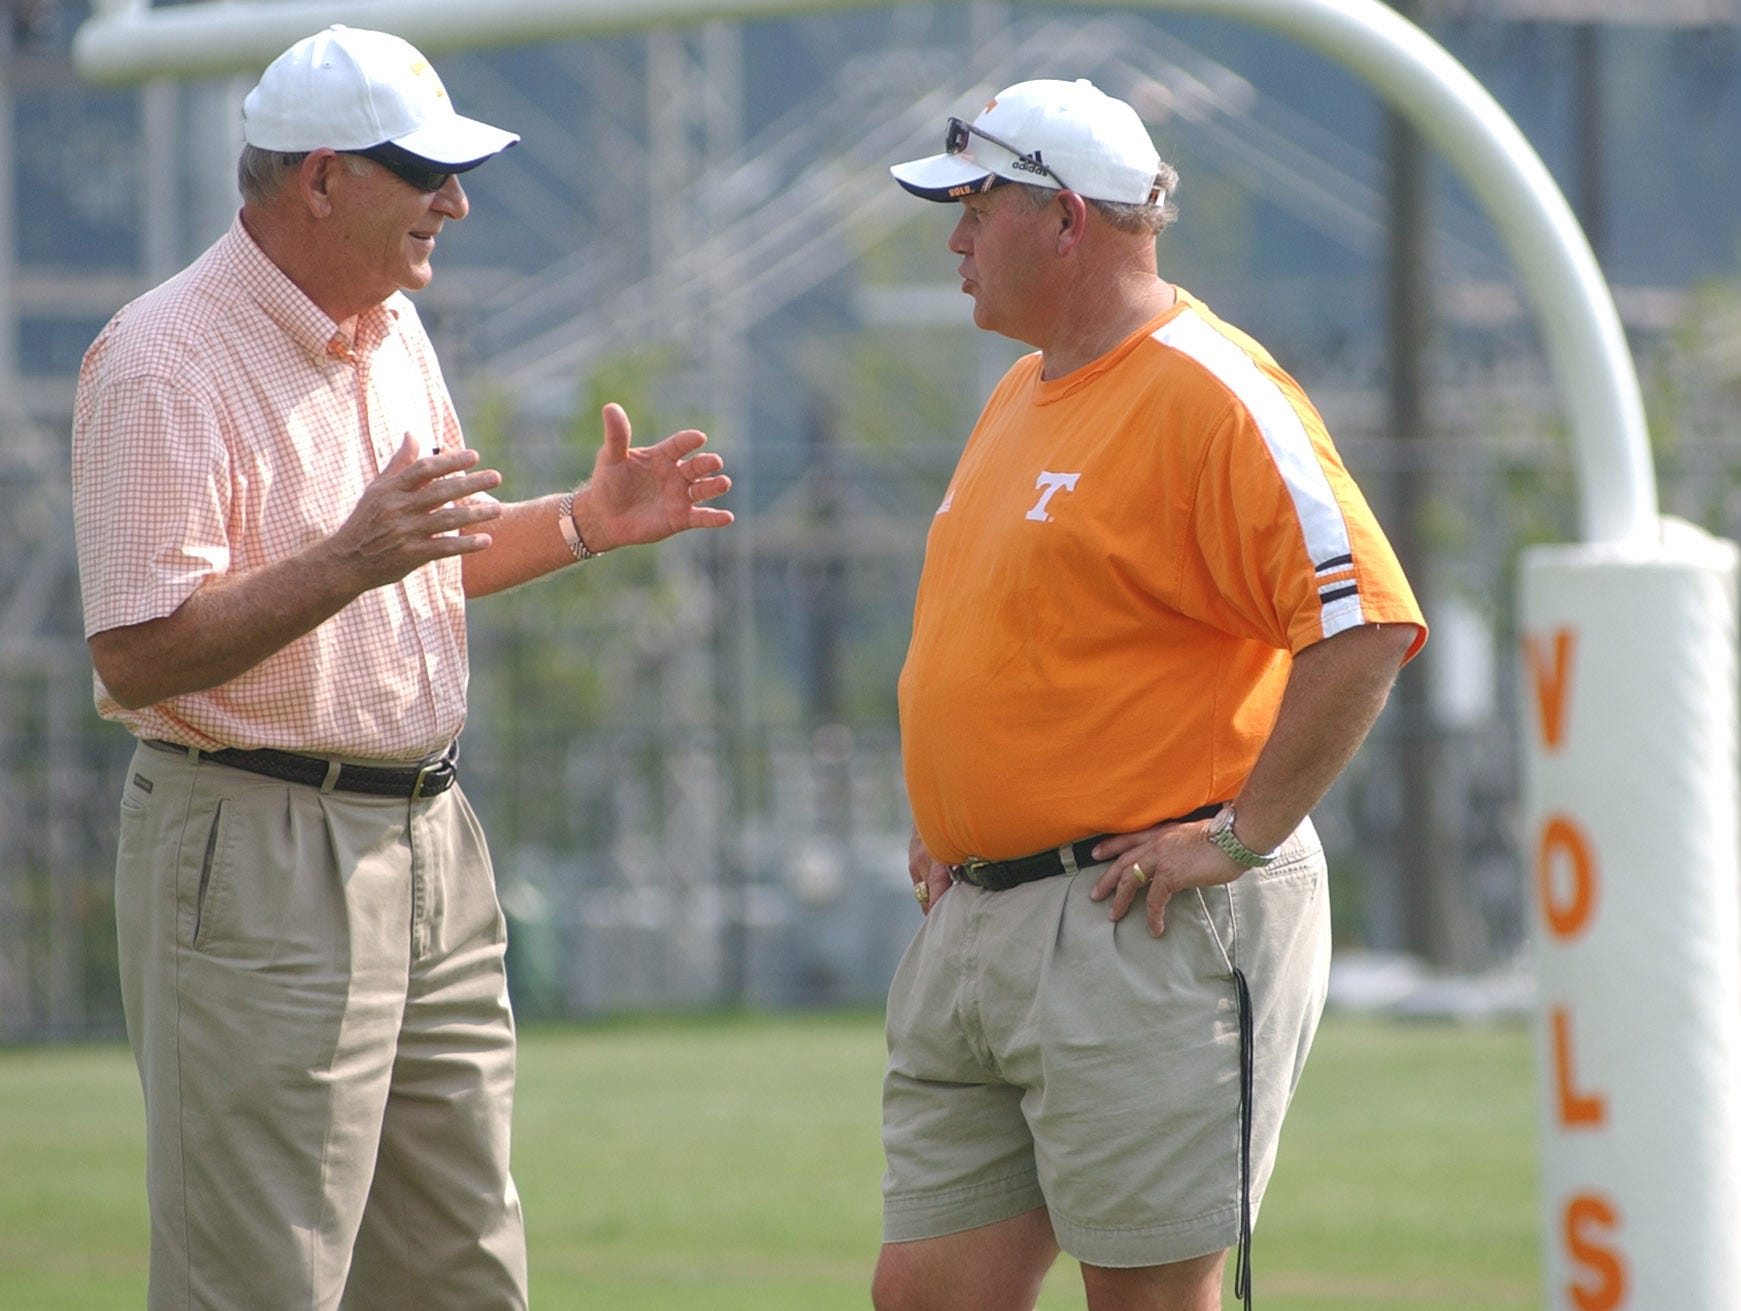 University of Tennessee Athletic Director Doug Dickey talks with head footballl coach Phillip Fulmer at football practice on Wednesday.